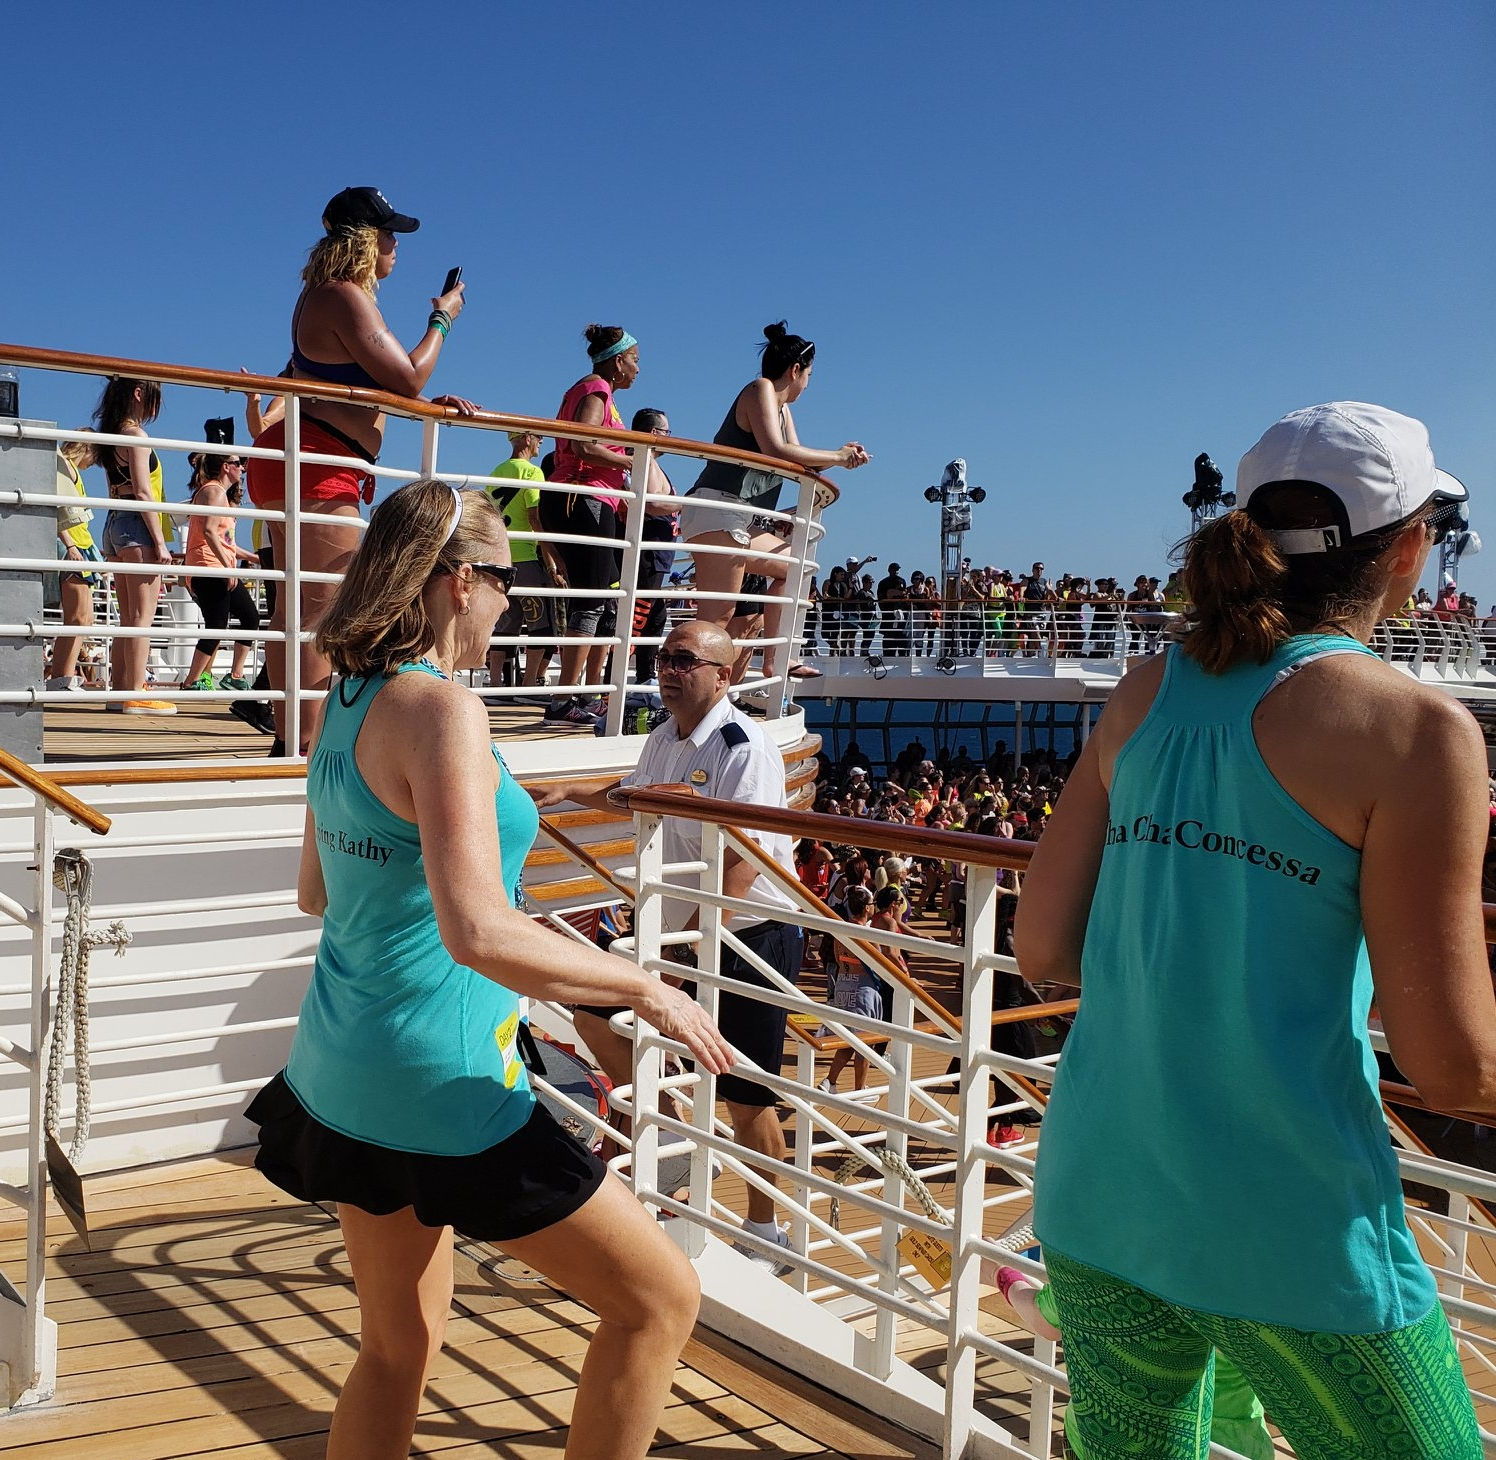 Pool decks weren't for lounging...everyone was moving! (photo C. Brown)